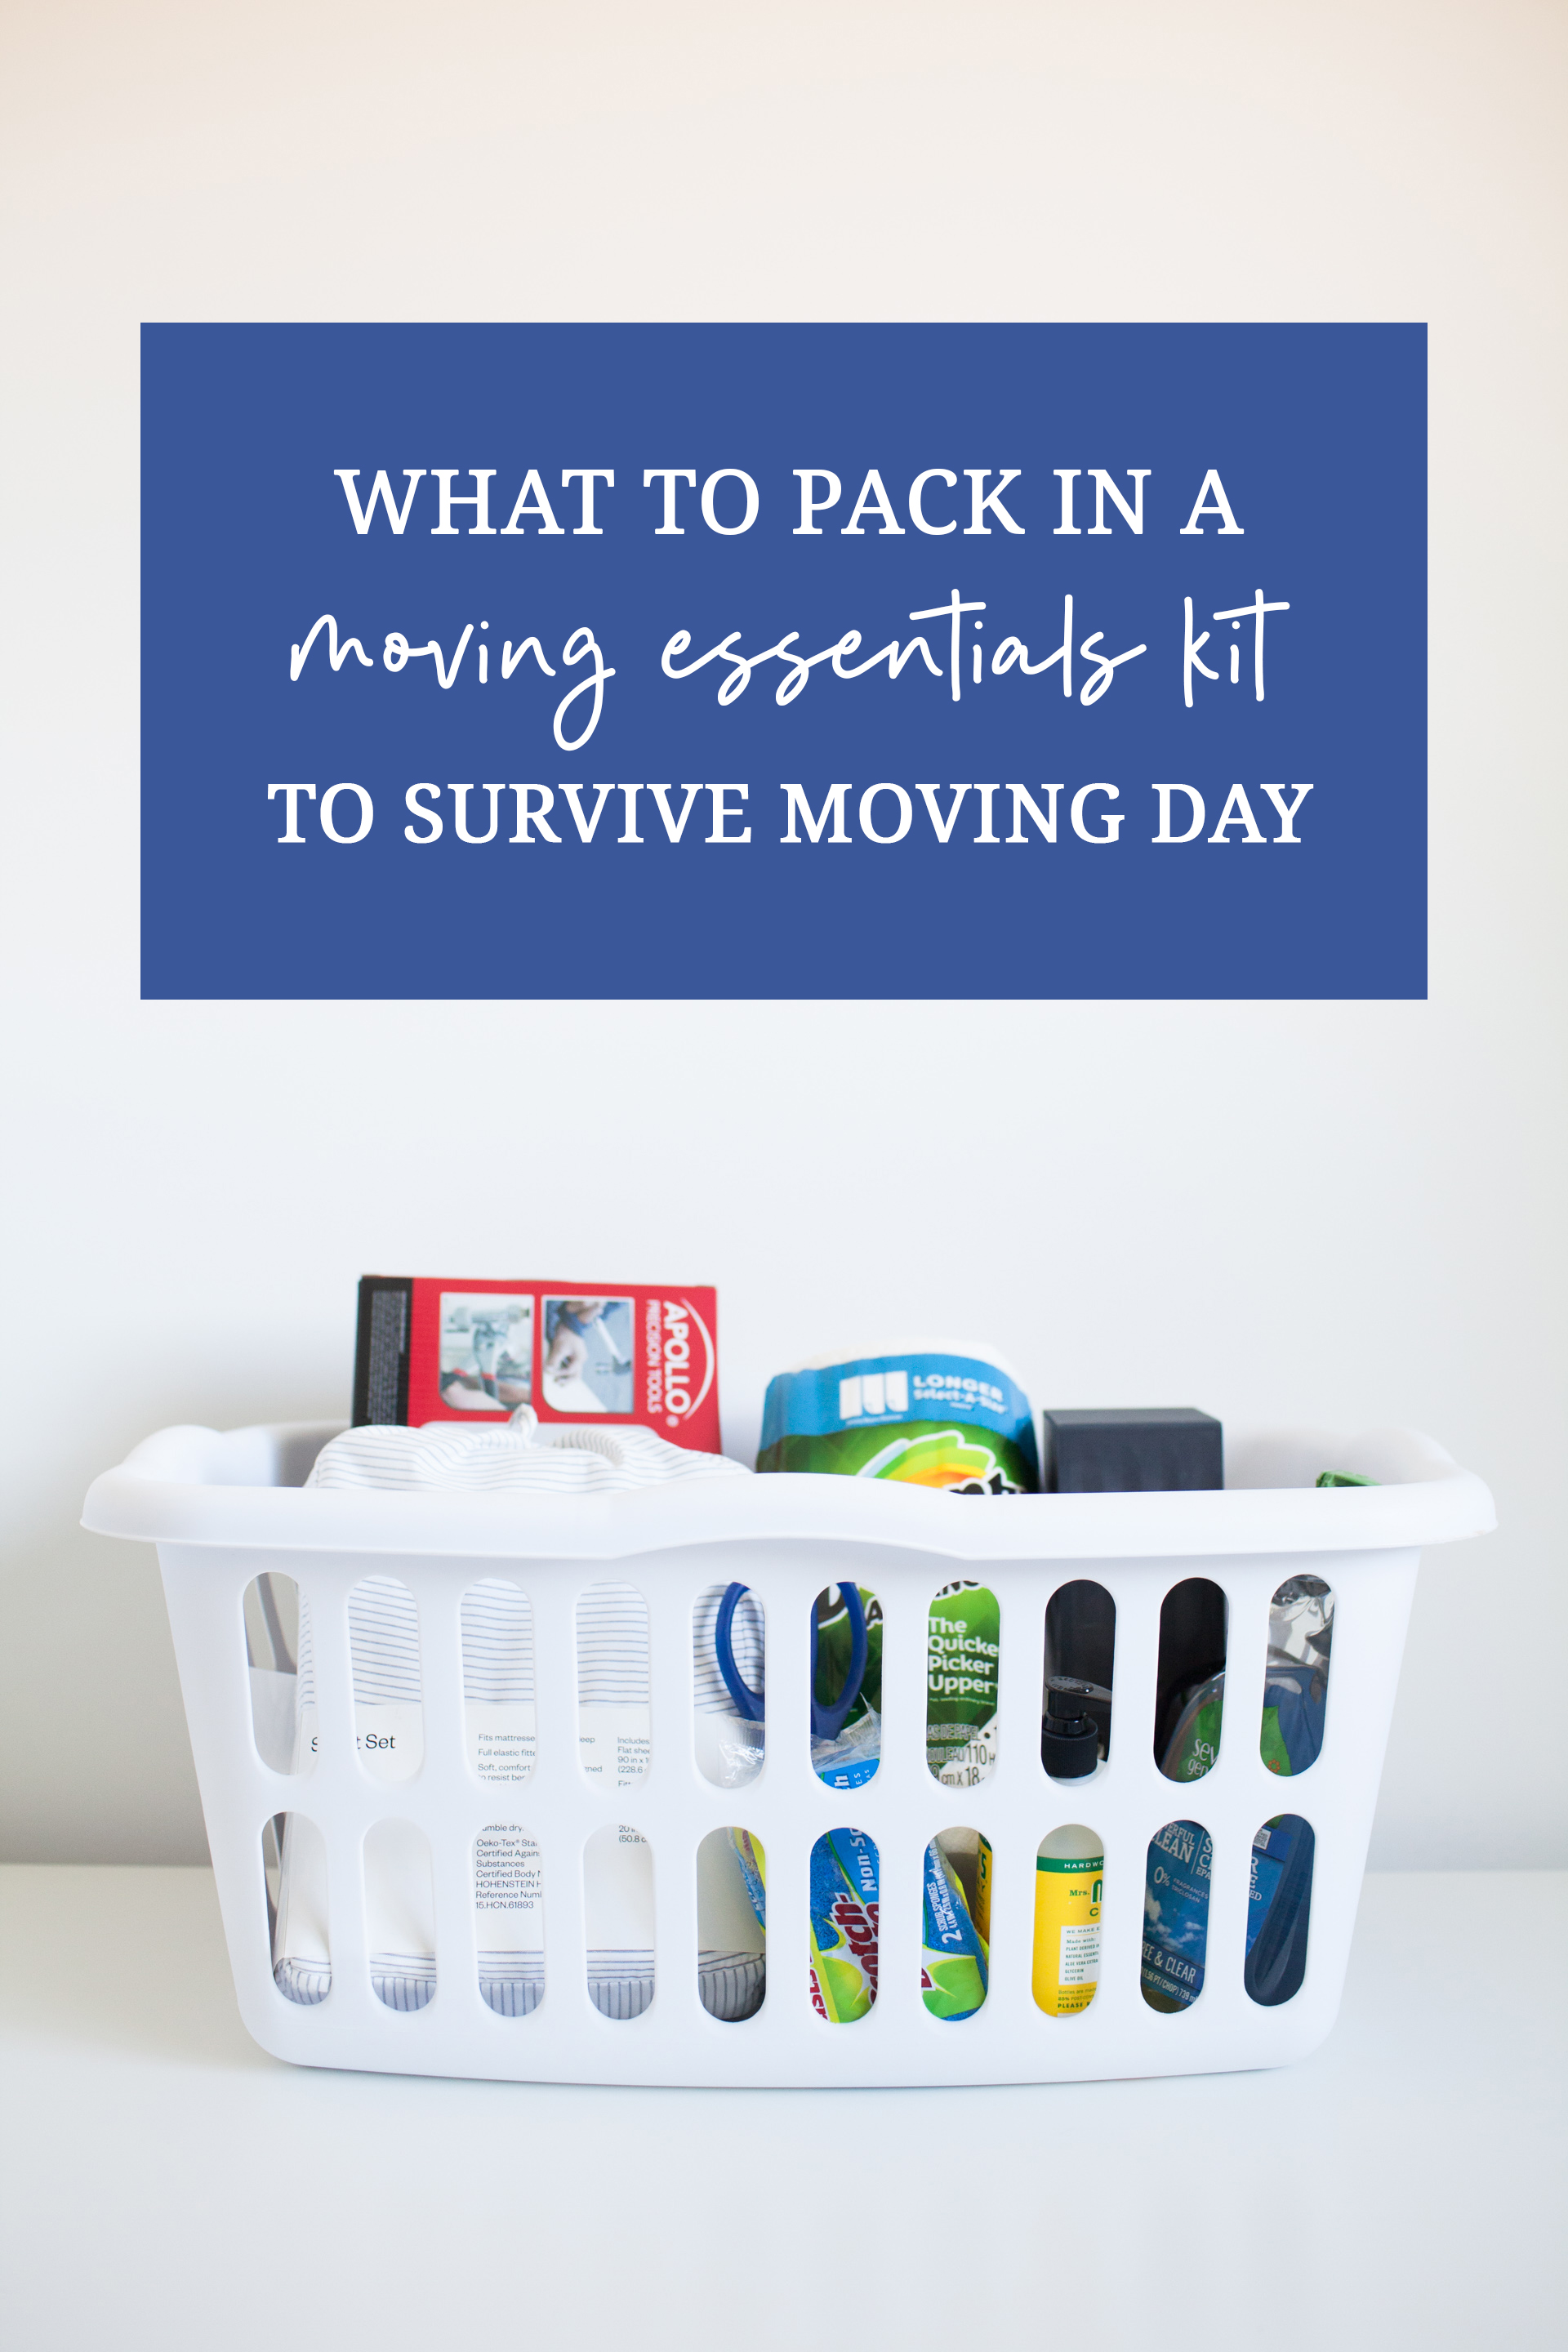 7 Things You Need on Moving Day - Moving Essentials Kit